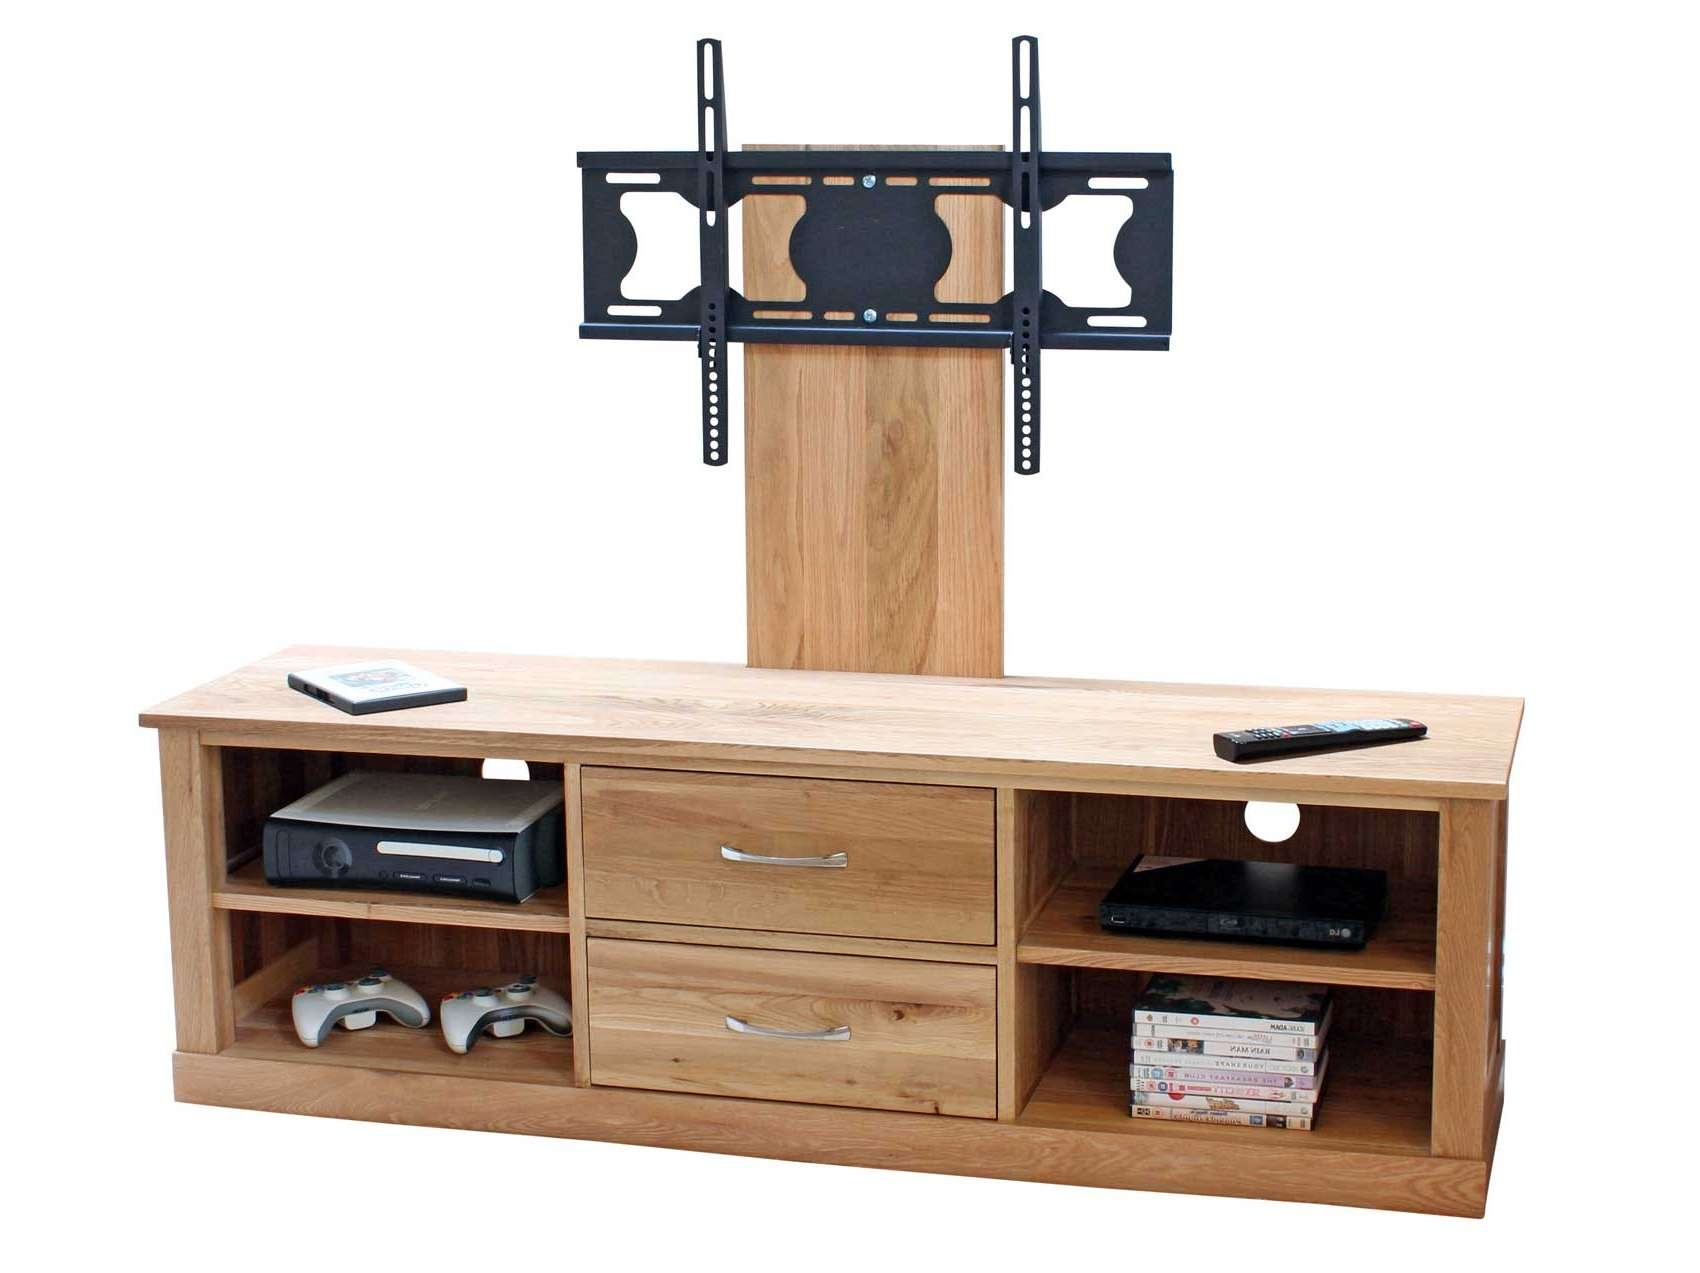 Oak Wooden Tv Stand With Mount For Flat Screen Of 14 Gorgeous Pertaining To Wood Tv Stands With Swivel Mount (View 8 of 15)